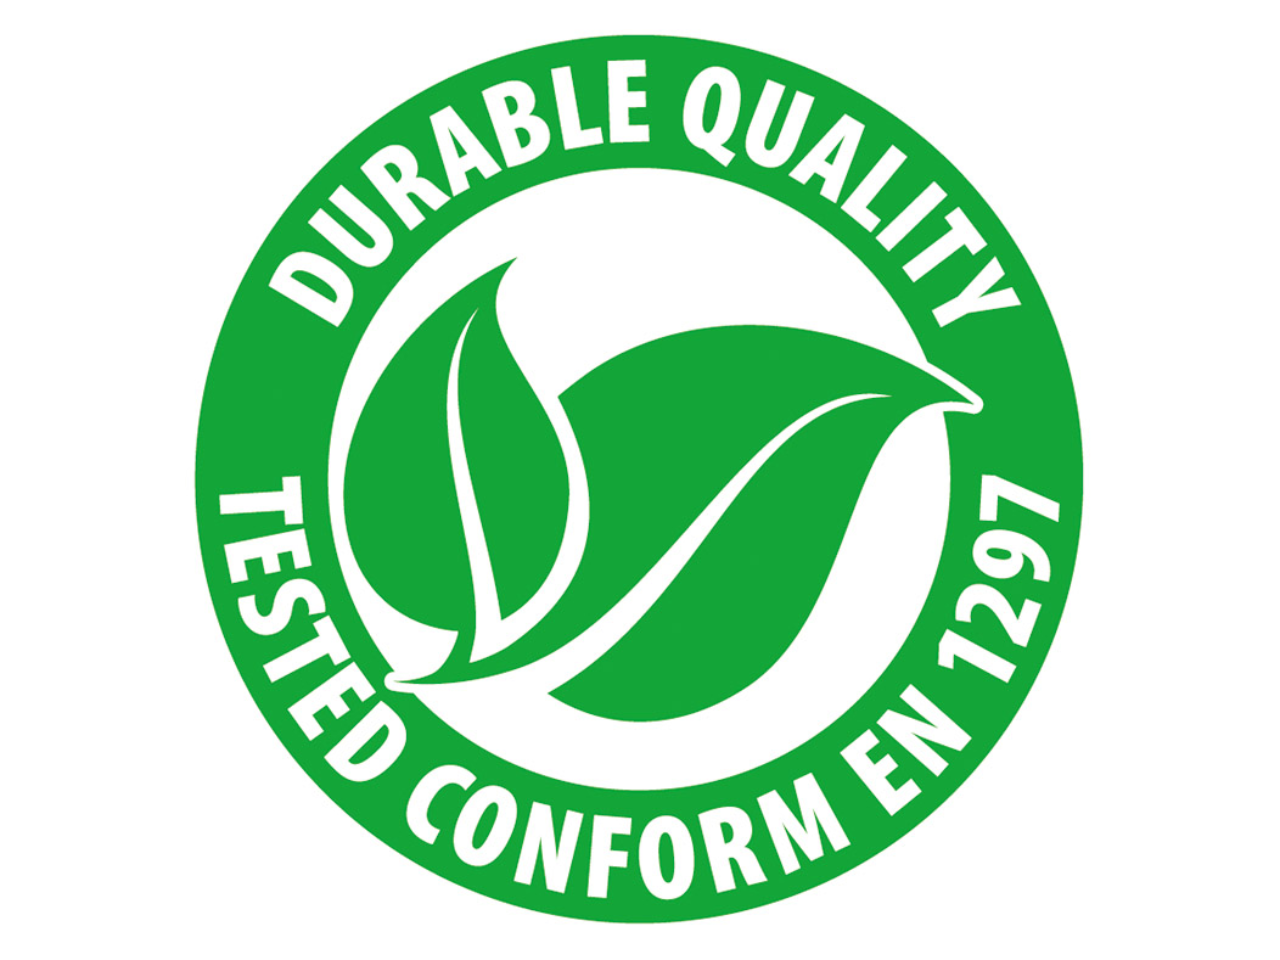 Durable quality